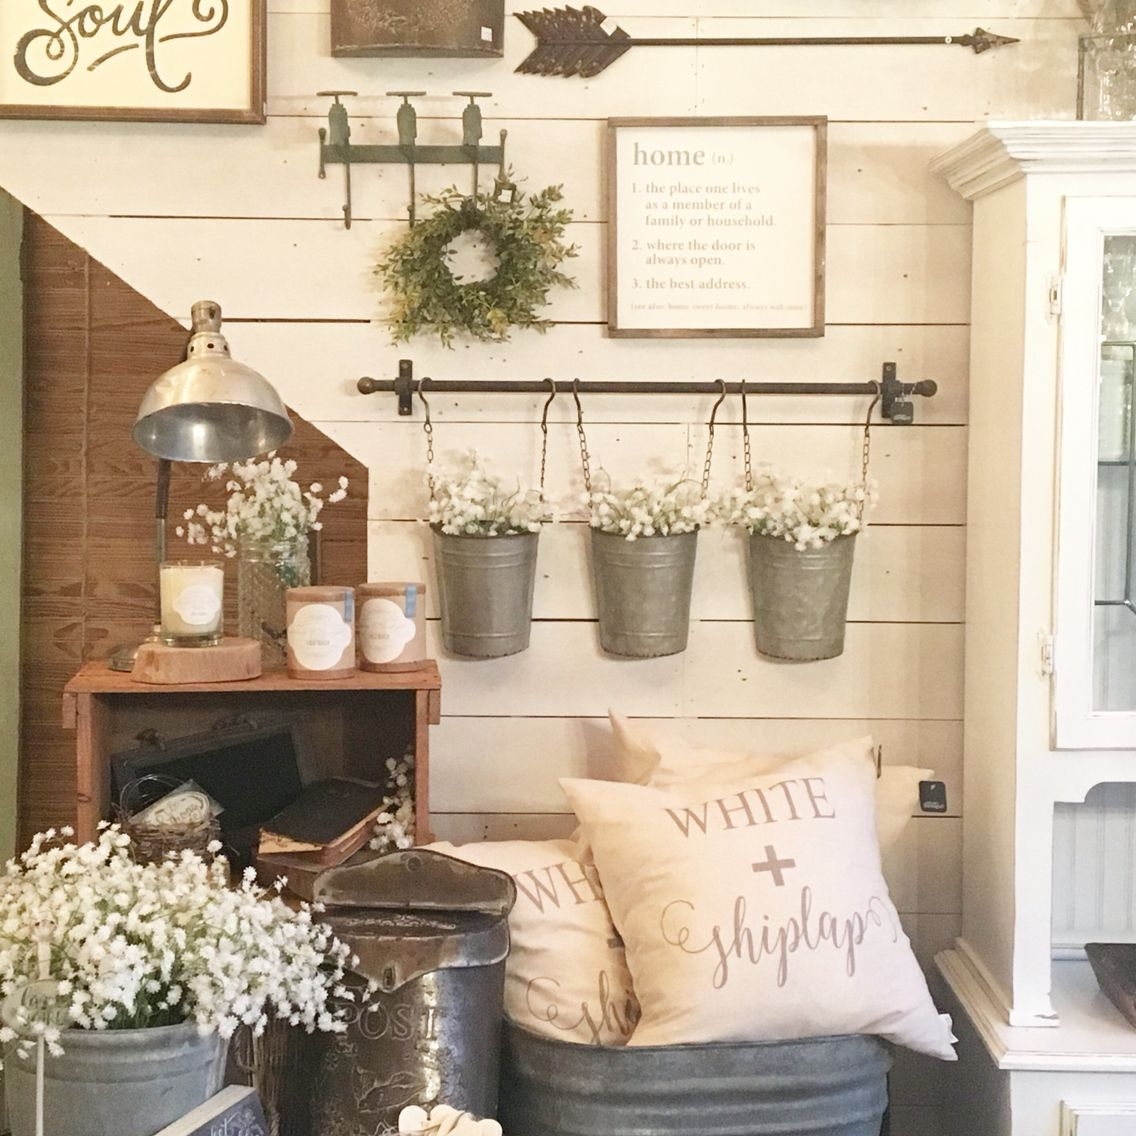 27 Rustic Wall Decor Ideas To Turn Shabby Into Fabulous Farm House Living Room Farmhouse Wall Decor Decor